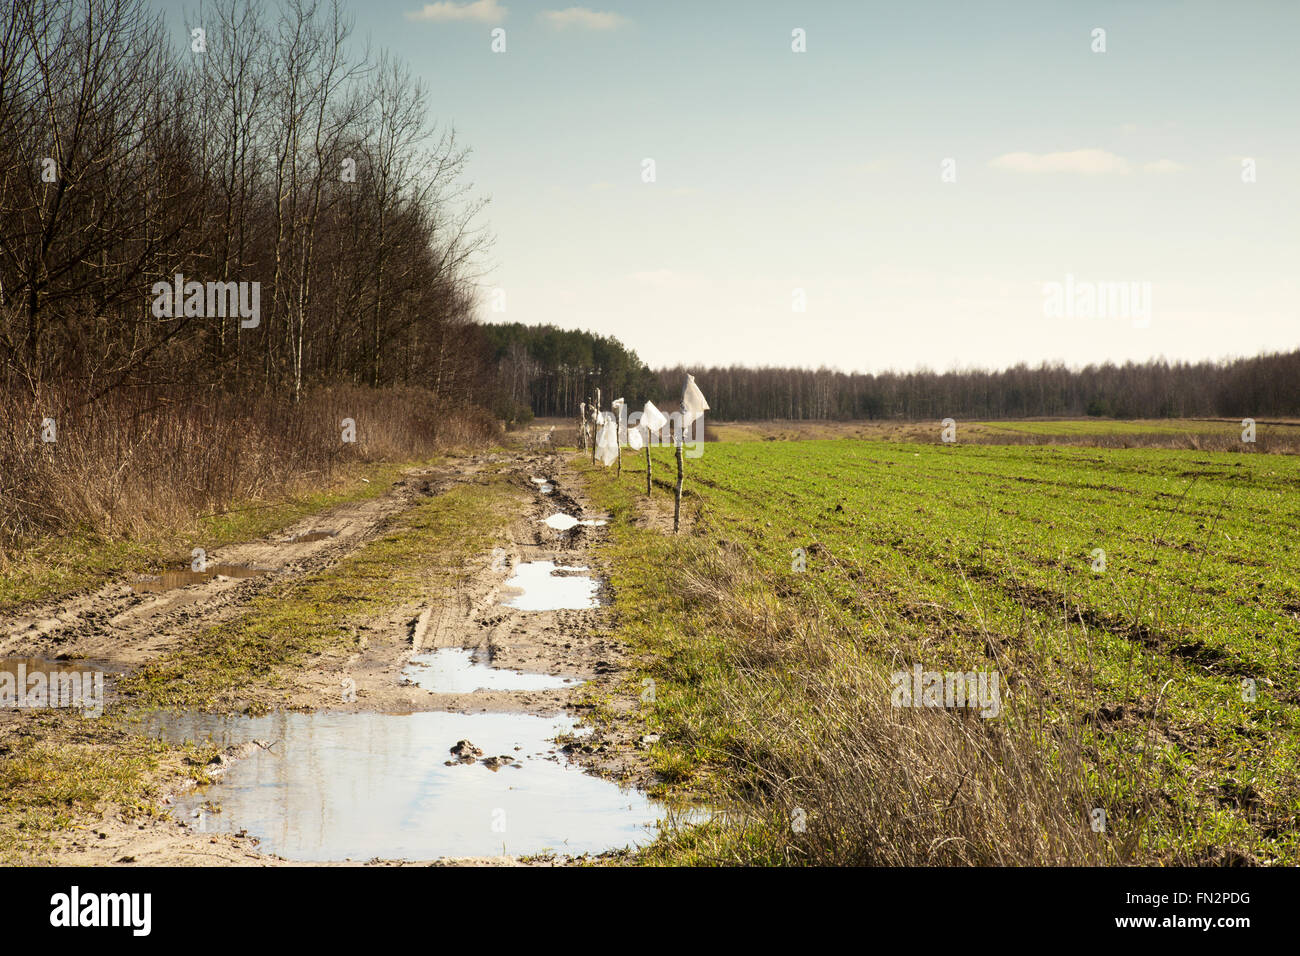 Poland, image of muddy and full of puddles road leading into the distance, a piece of winter wheat field, in early Stock Photo